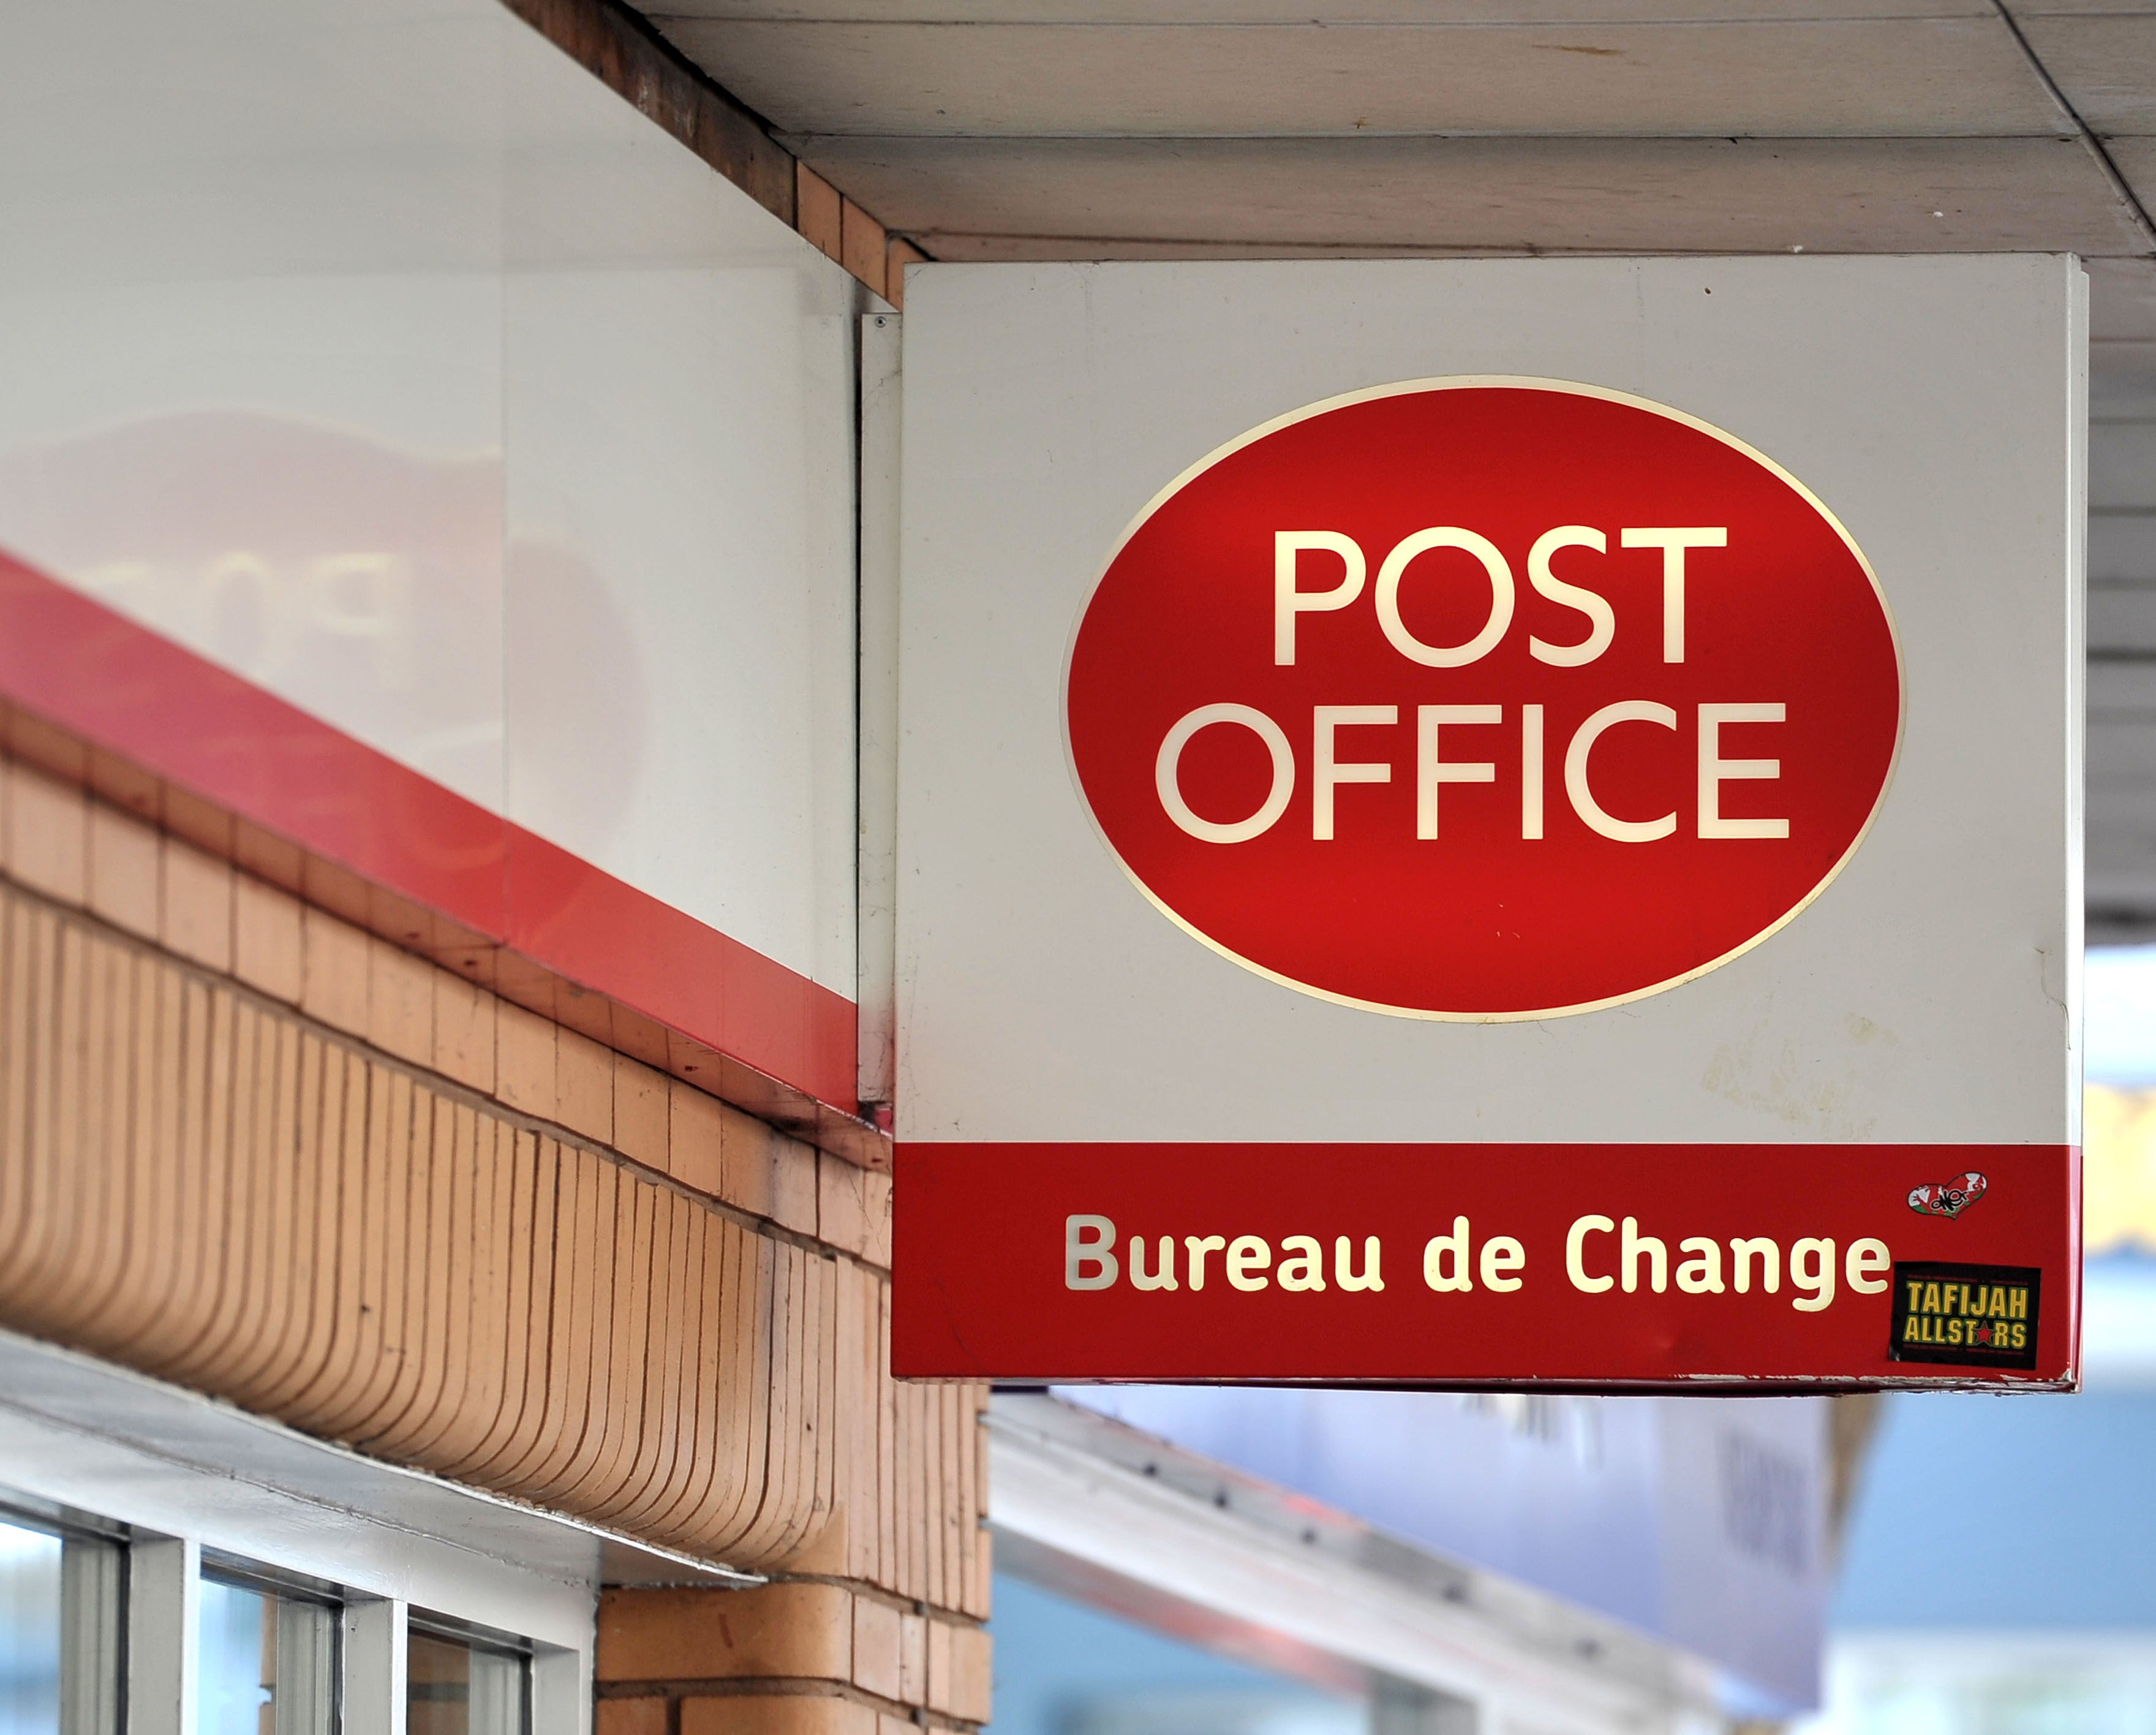 Post office apologises after technical glitch shuts down counters